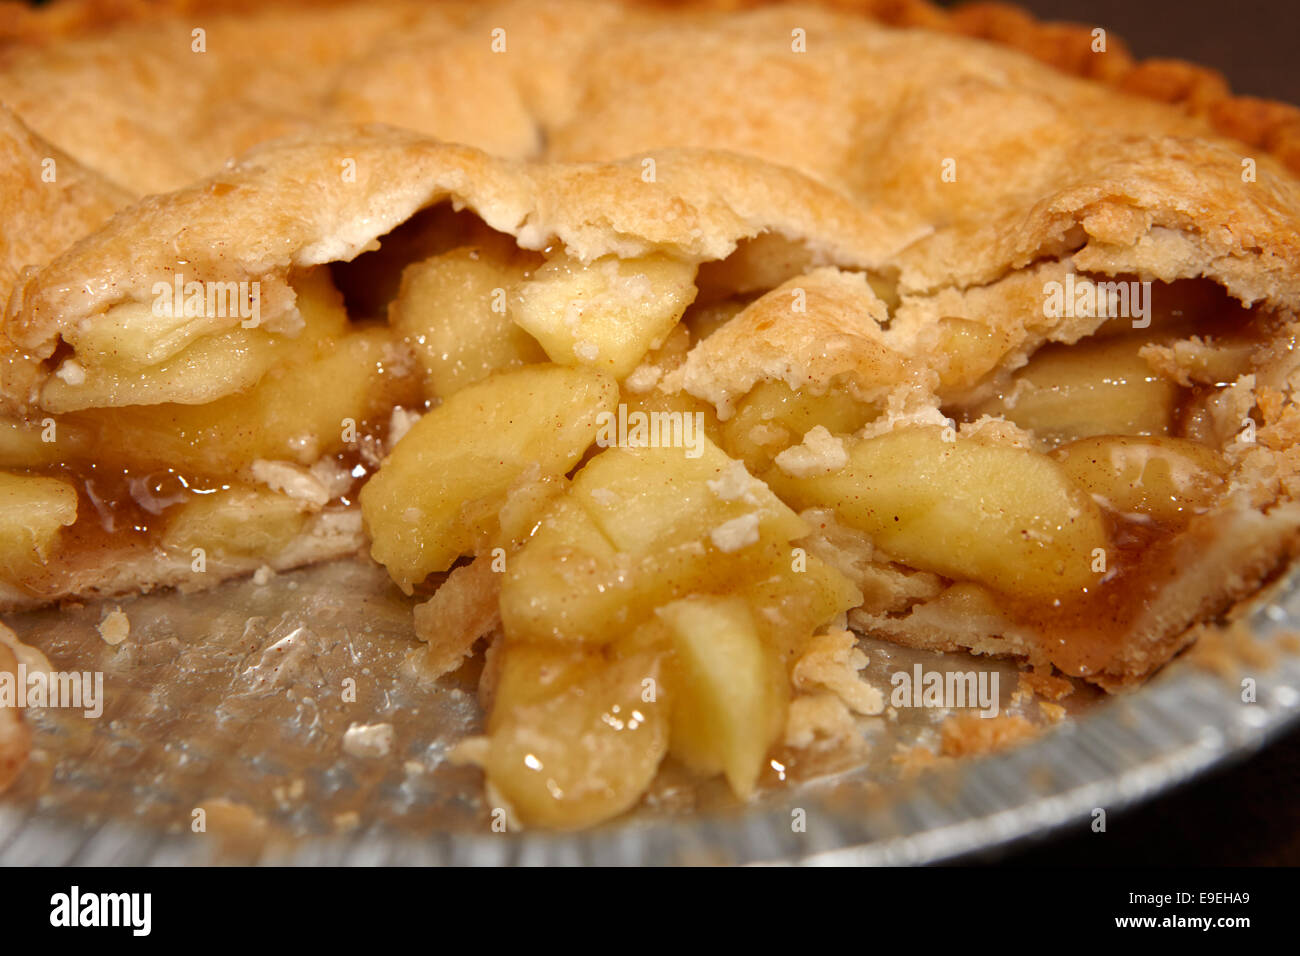 large chunks of apple in mass produced apple pie - Stock Image